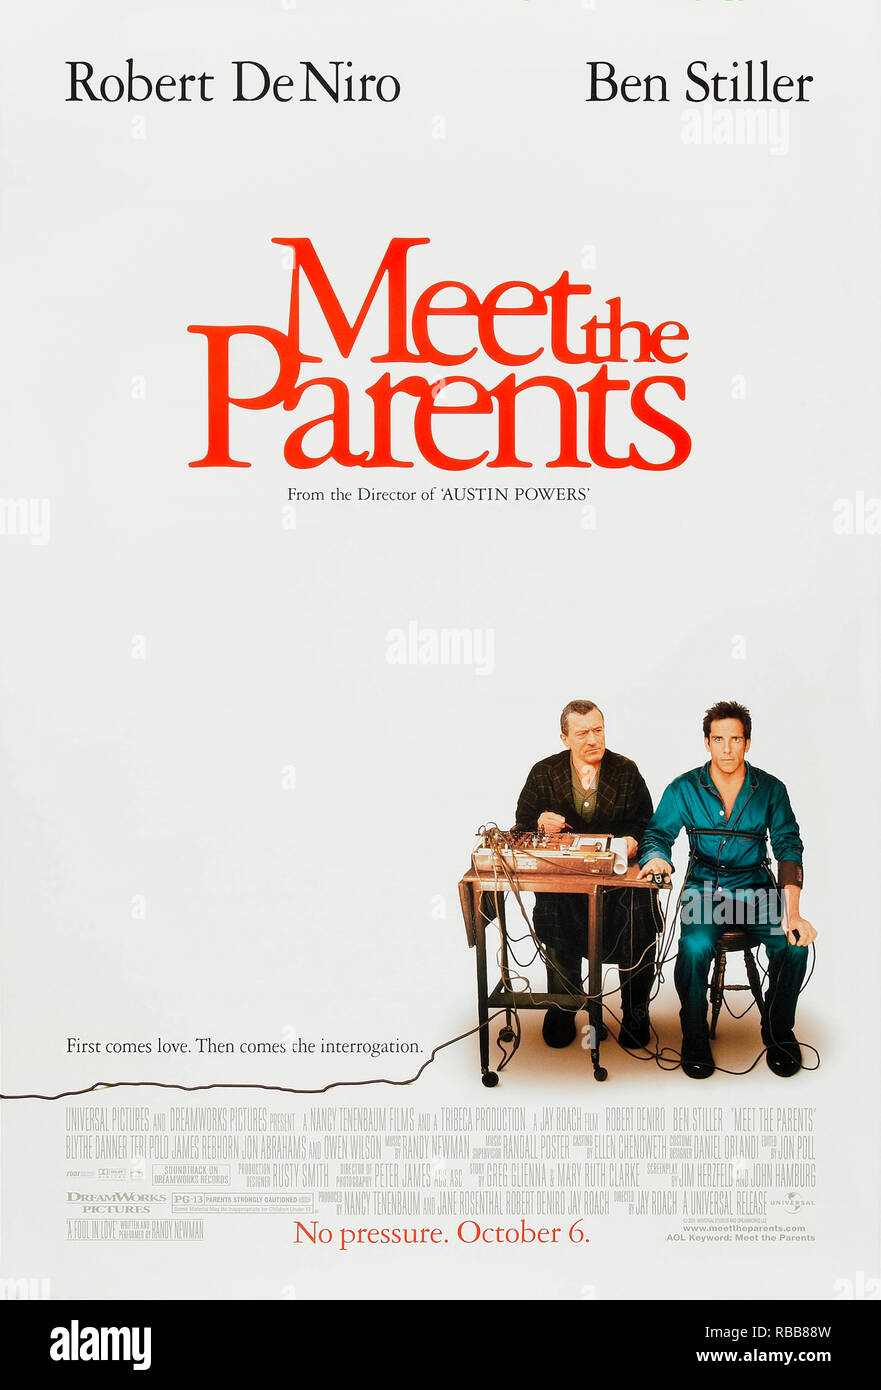 Meet the Parents (2000) directed by Jay Roach and starring Ben Stiller, Robert De Niro, Teri Polo and Owen Wilson. Greg Focker meets his girlfriend's protective and CIA trained father. - Stock Image